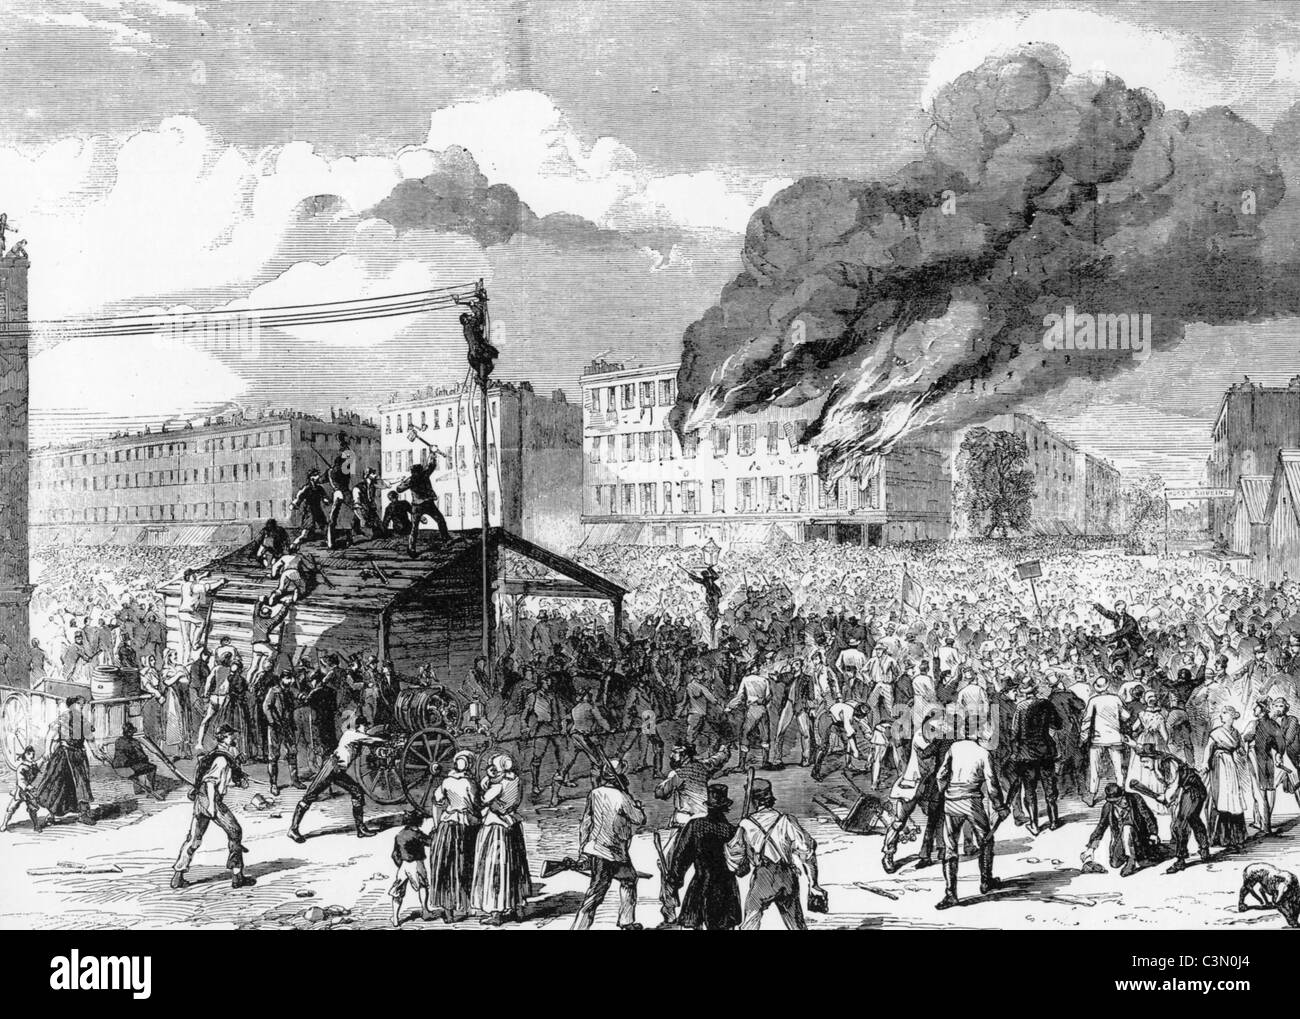 NEW YORK CITY DRAFT RIOTS July 13-16 1863 resulting from Congressional laws to draft men for the Civil War - Stock Image